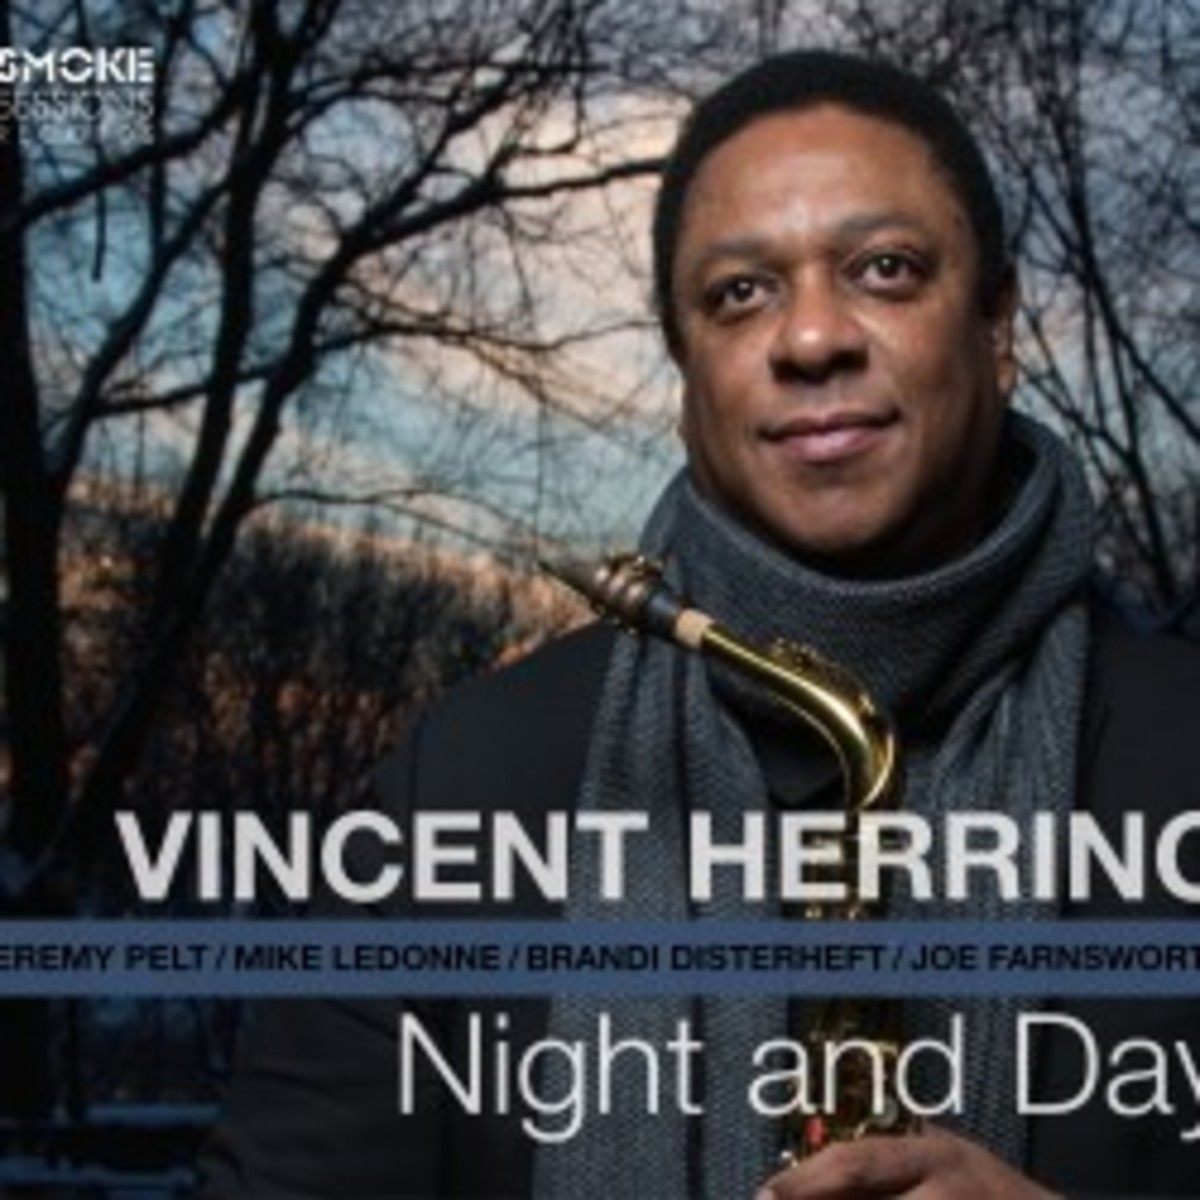 1504-Vincent-Herring-NIGHT-AND-DAY-Zoom-Cover-250x250